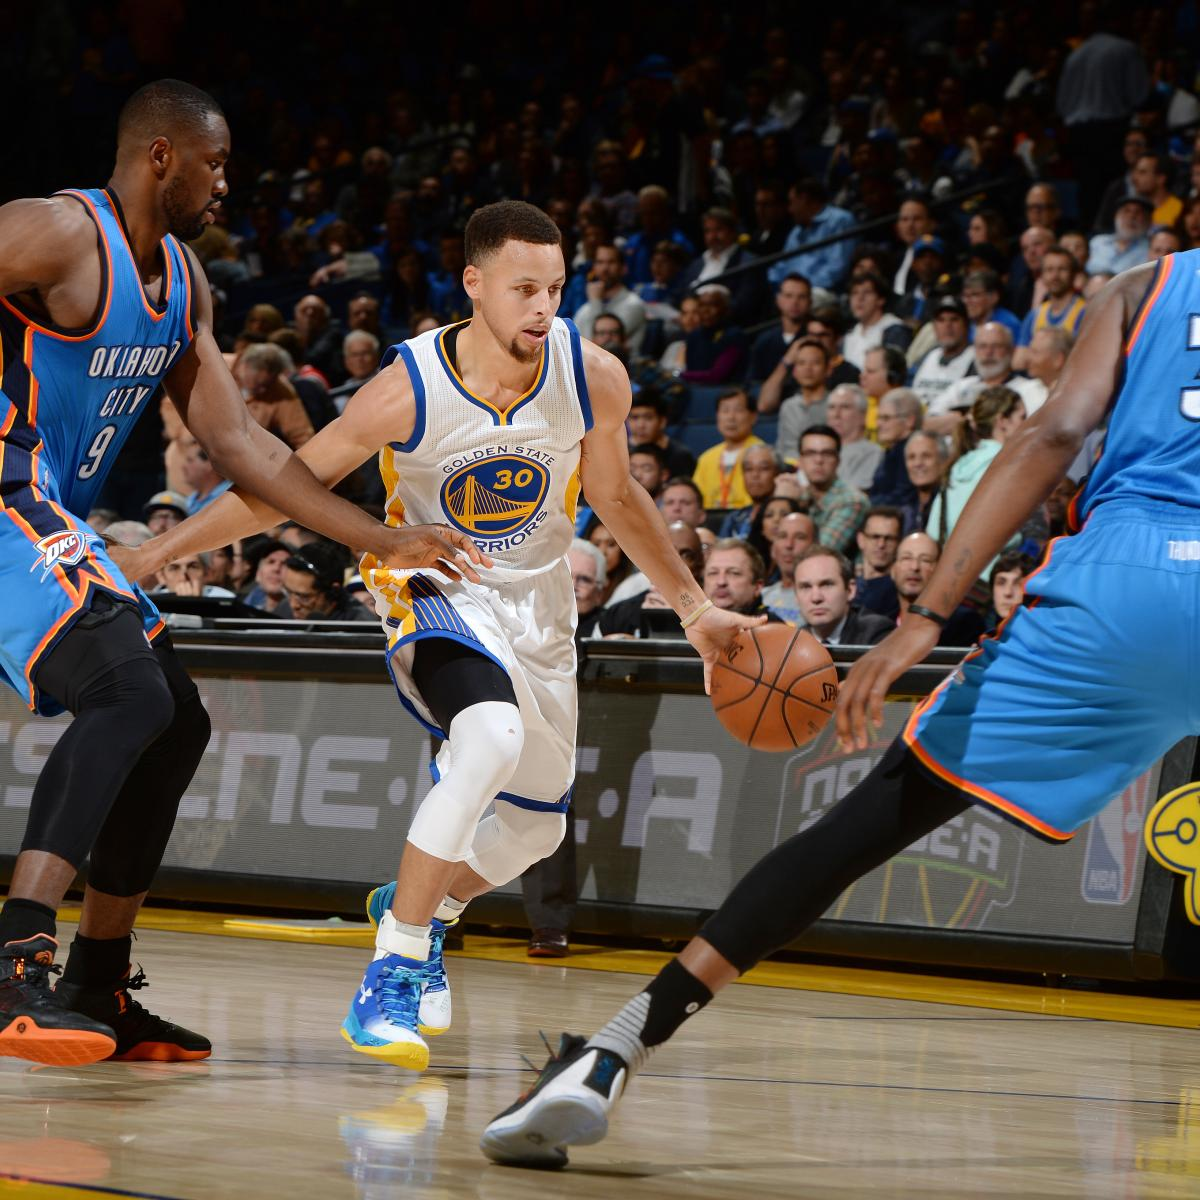 Warriors Come Out To Play Bleacher Report: Warriors' Schedule Running Out Of Hurdles To Stop